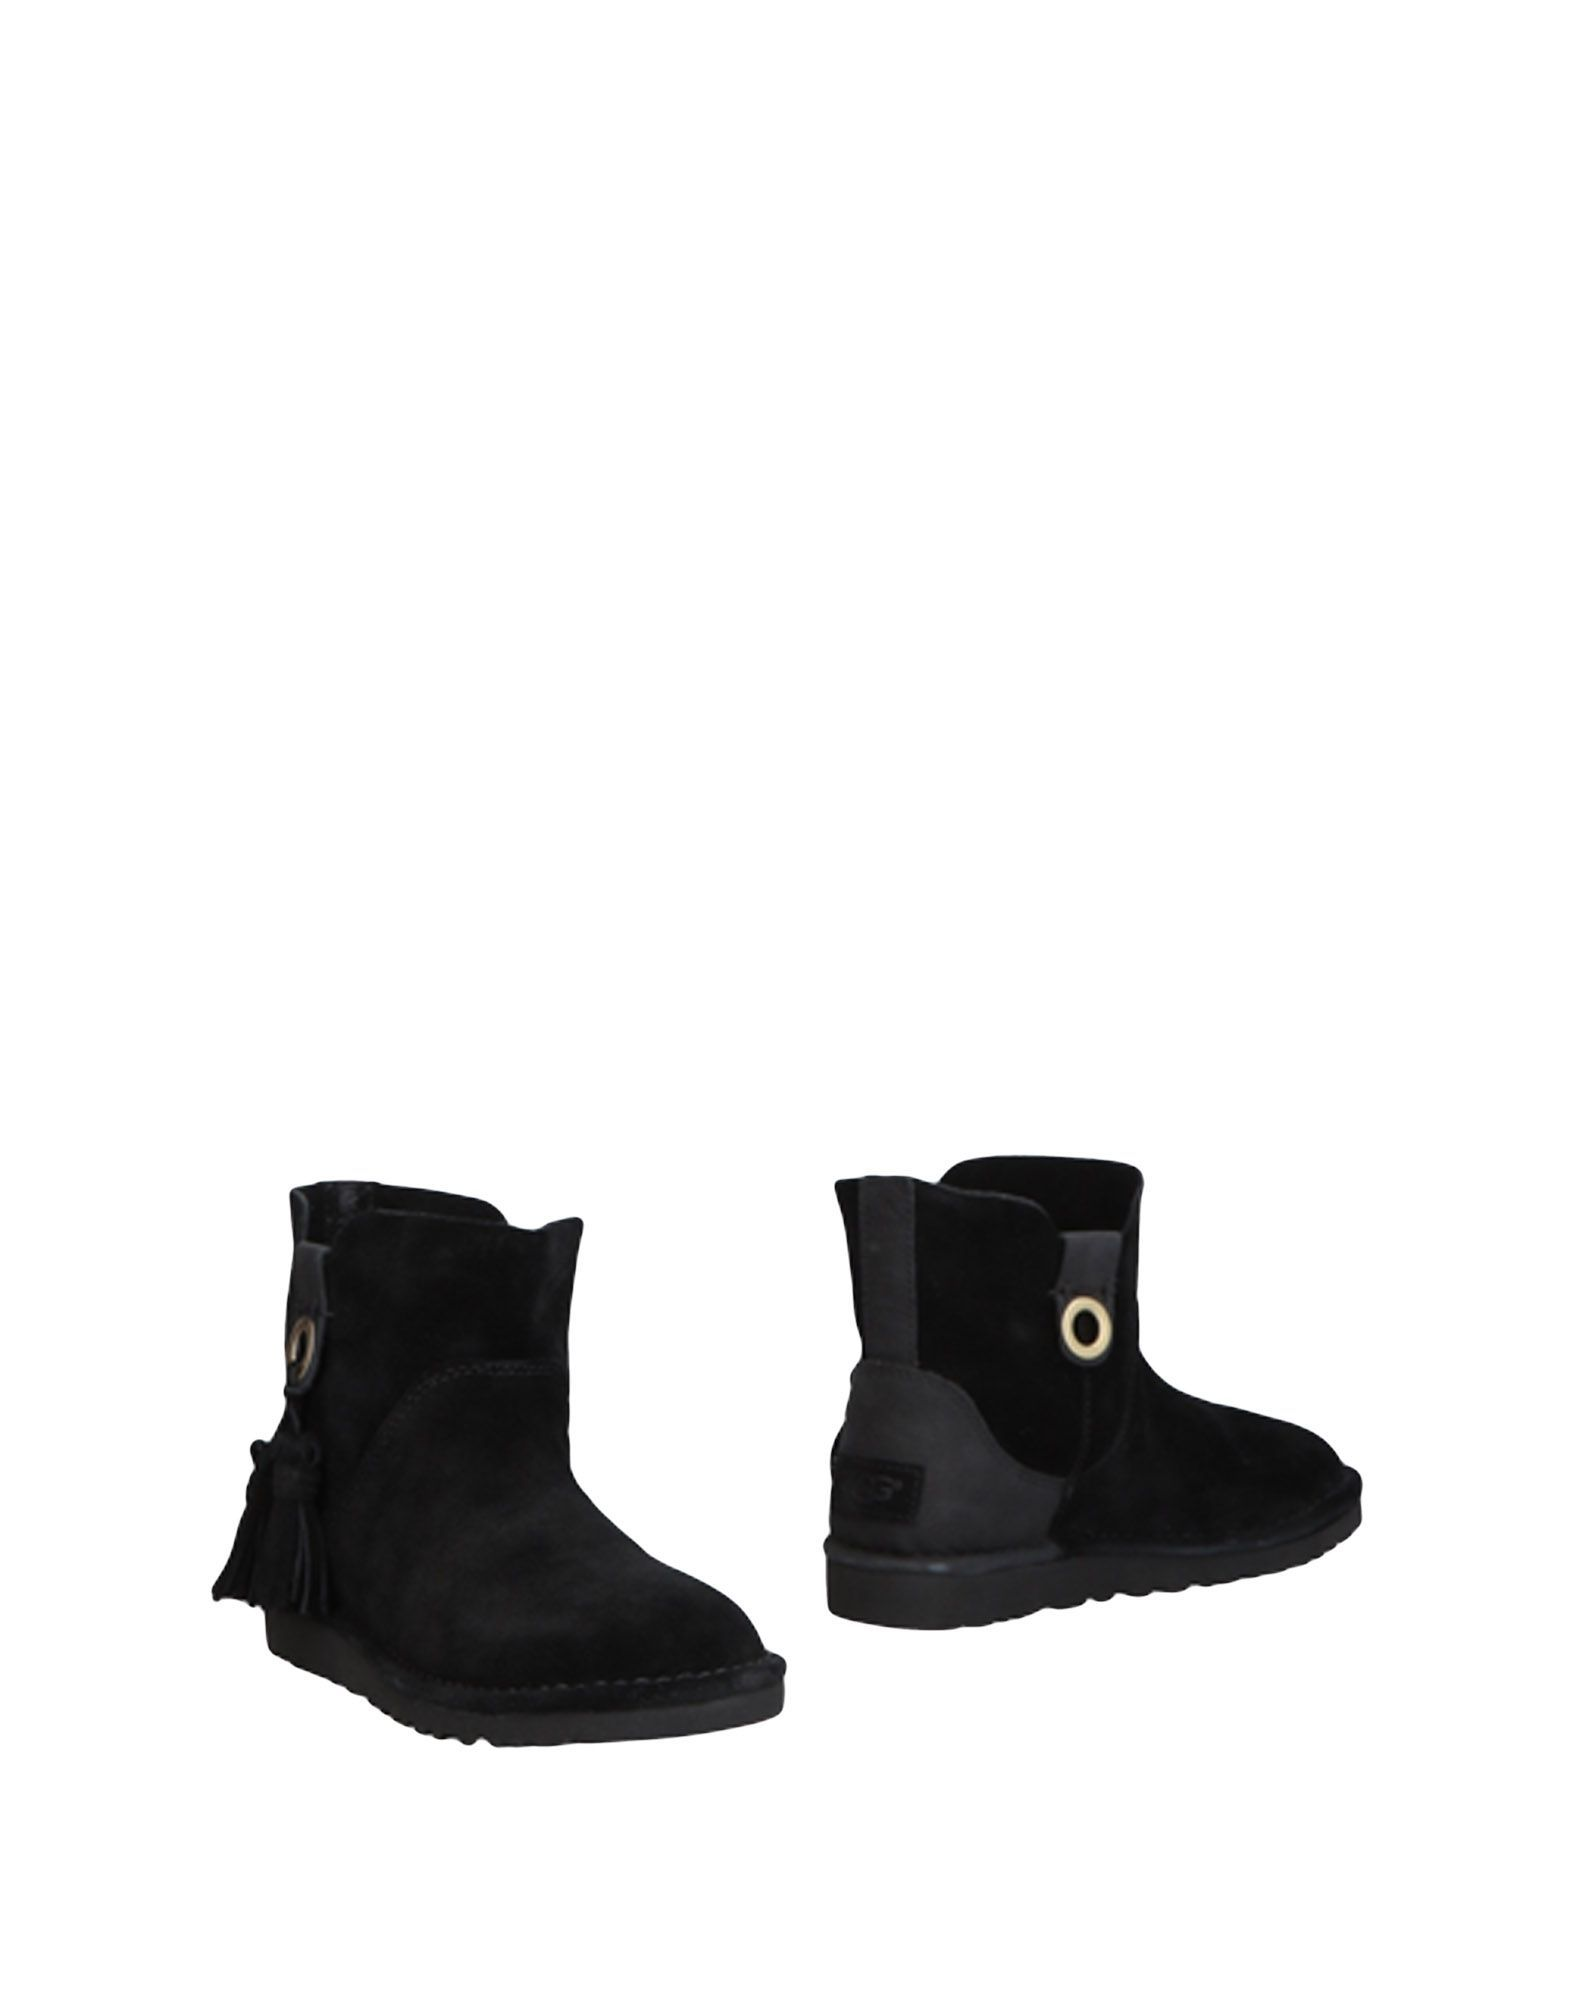 Ugg Australia Black Leather Ankle Boots